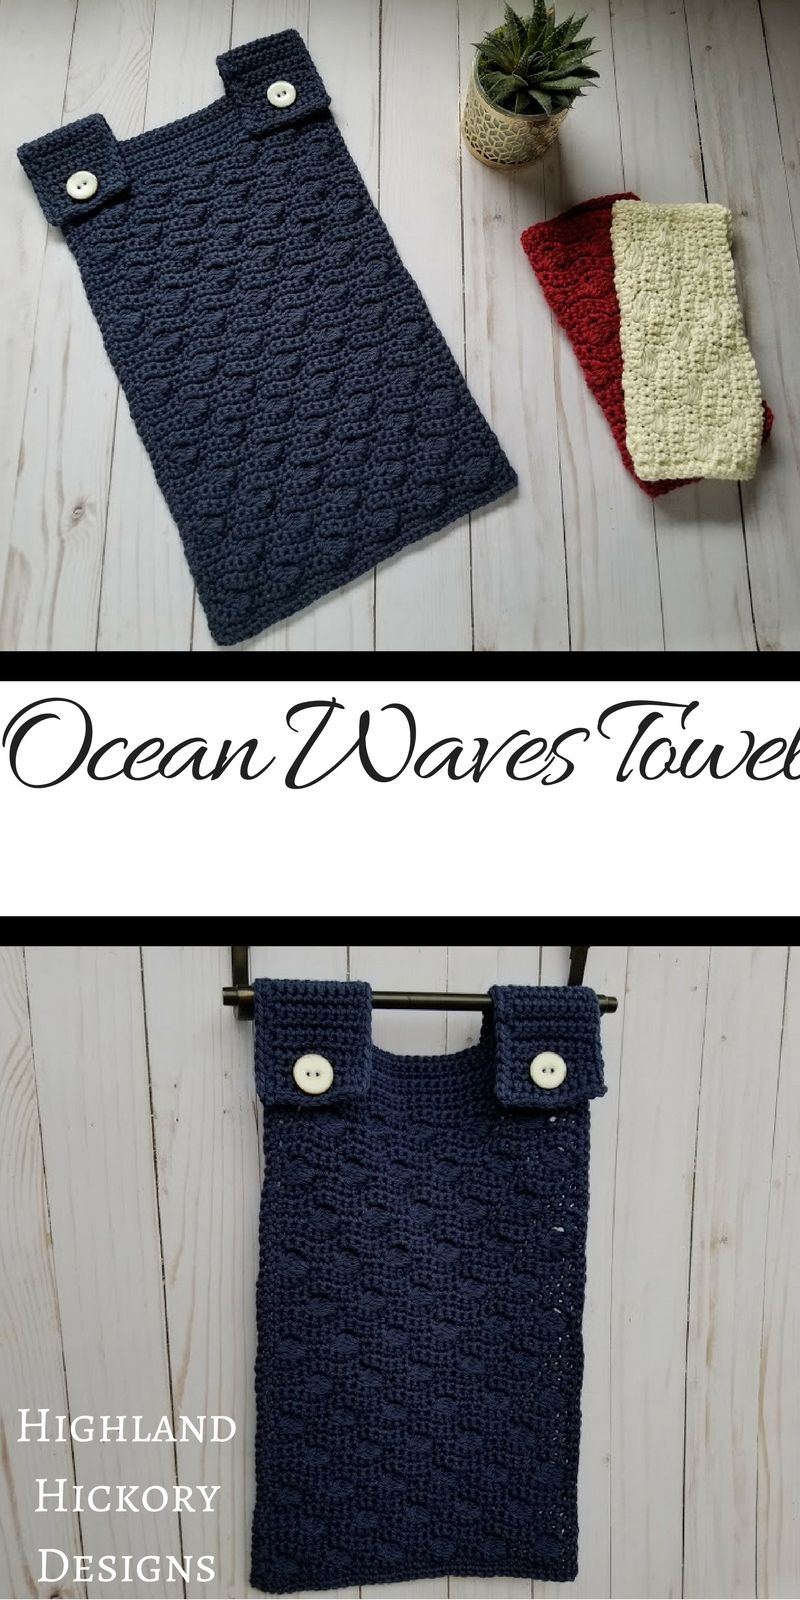 Ocean Waves Towel Cotton Crochet Patterns Beginner Crochet